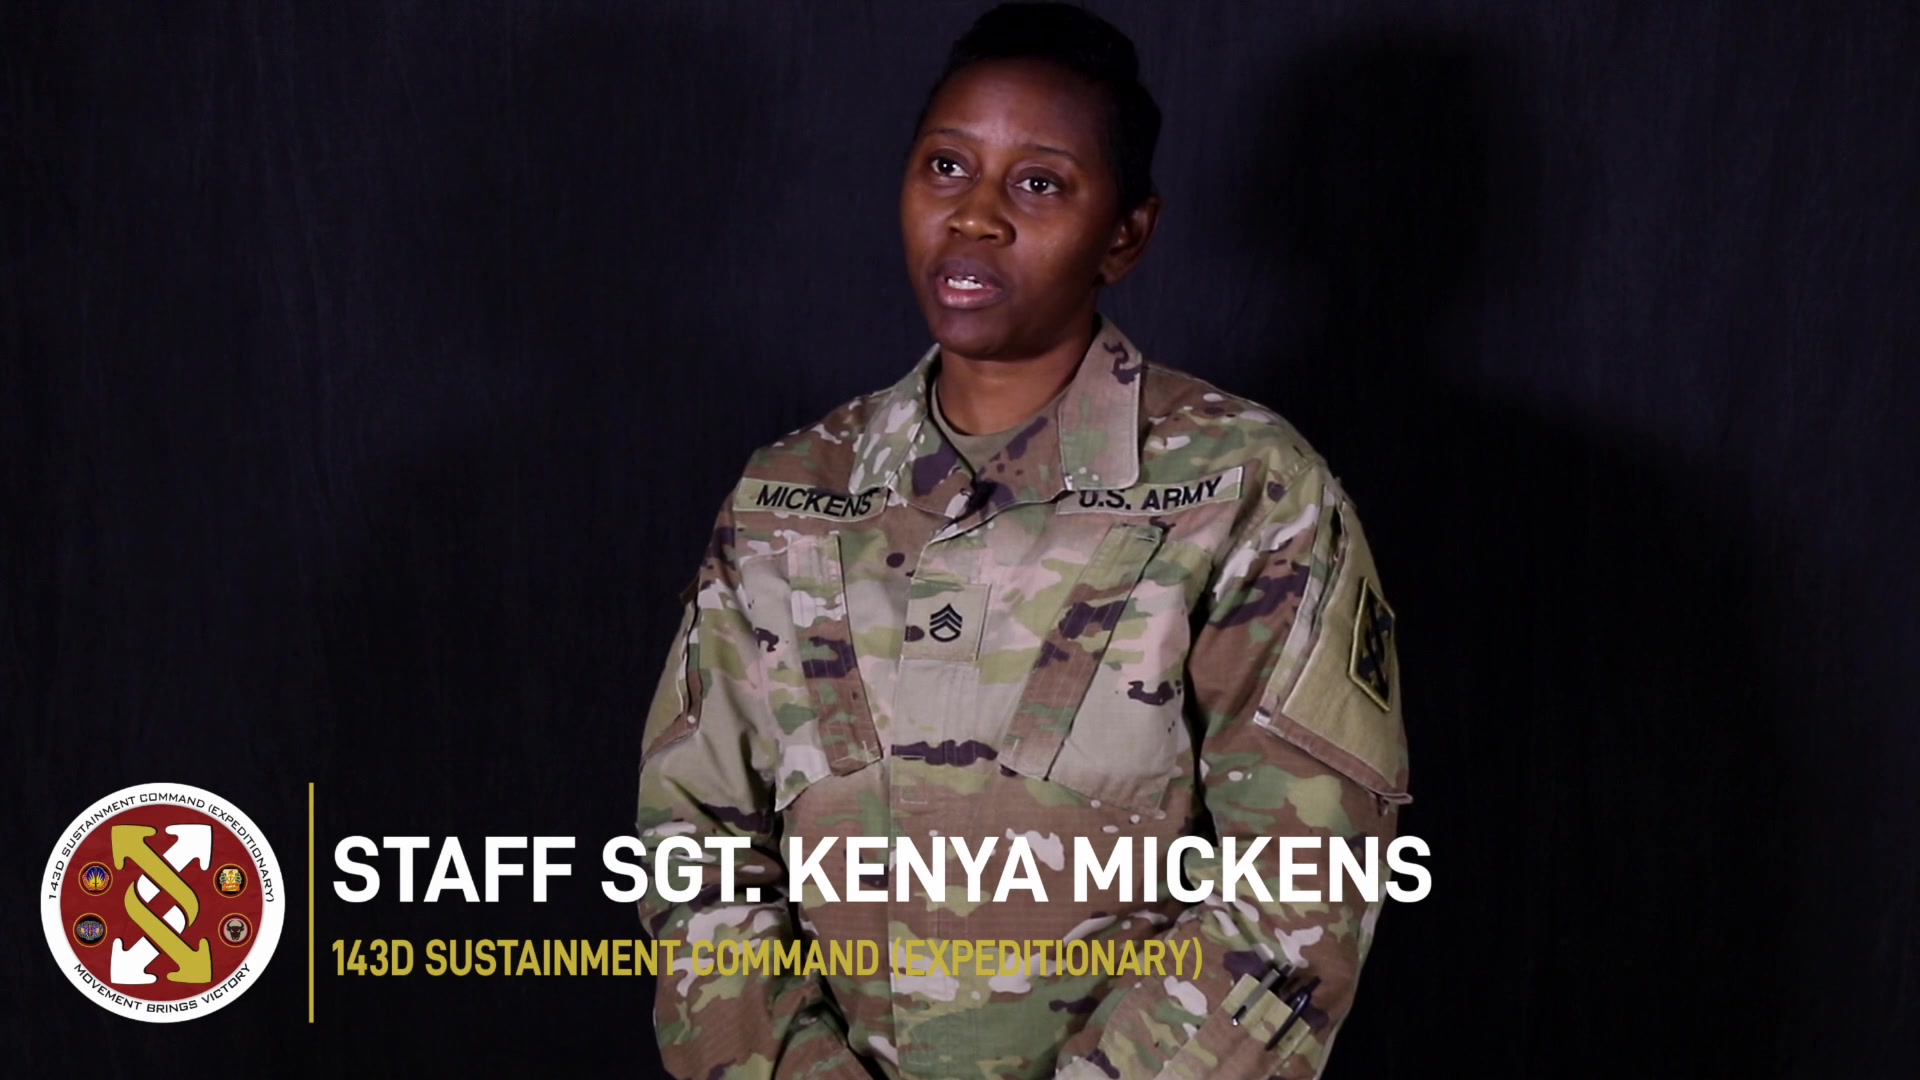 Staff Sgt. Kenya Mickens of the 143d Sustainment Command (Expeditionary) in Orlando, Fla, shared how her work environment changed during the COVID-19 pandemic. (U.S. Army video by Spc. Leon Orange)